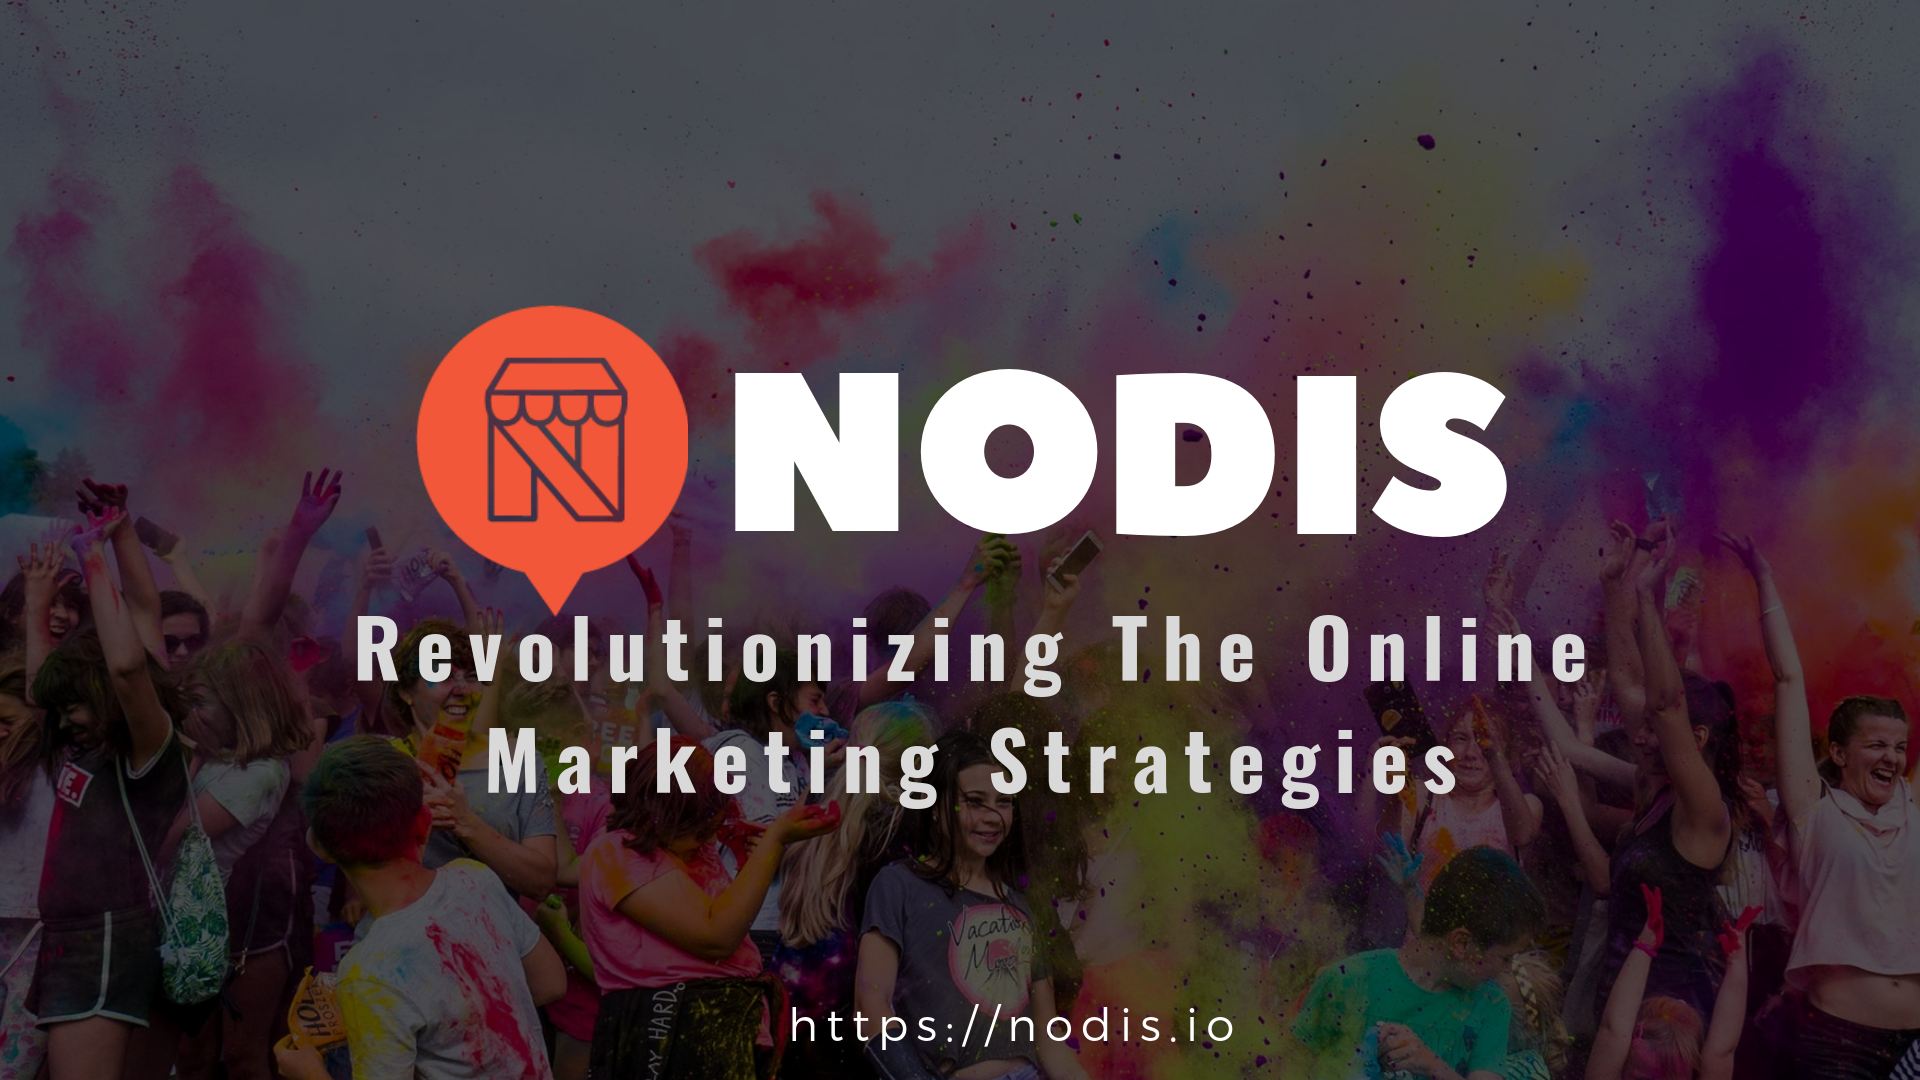 Nodis Revolutionizing The Online Marketing Strategies